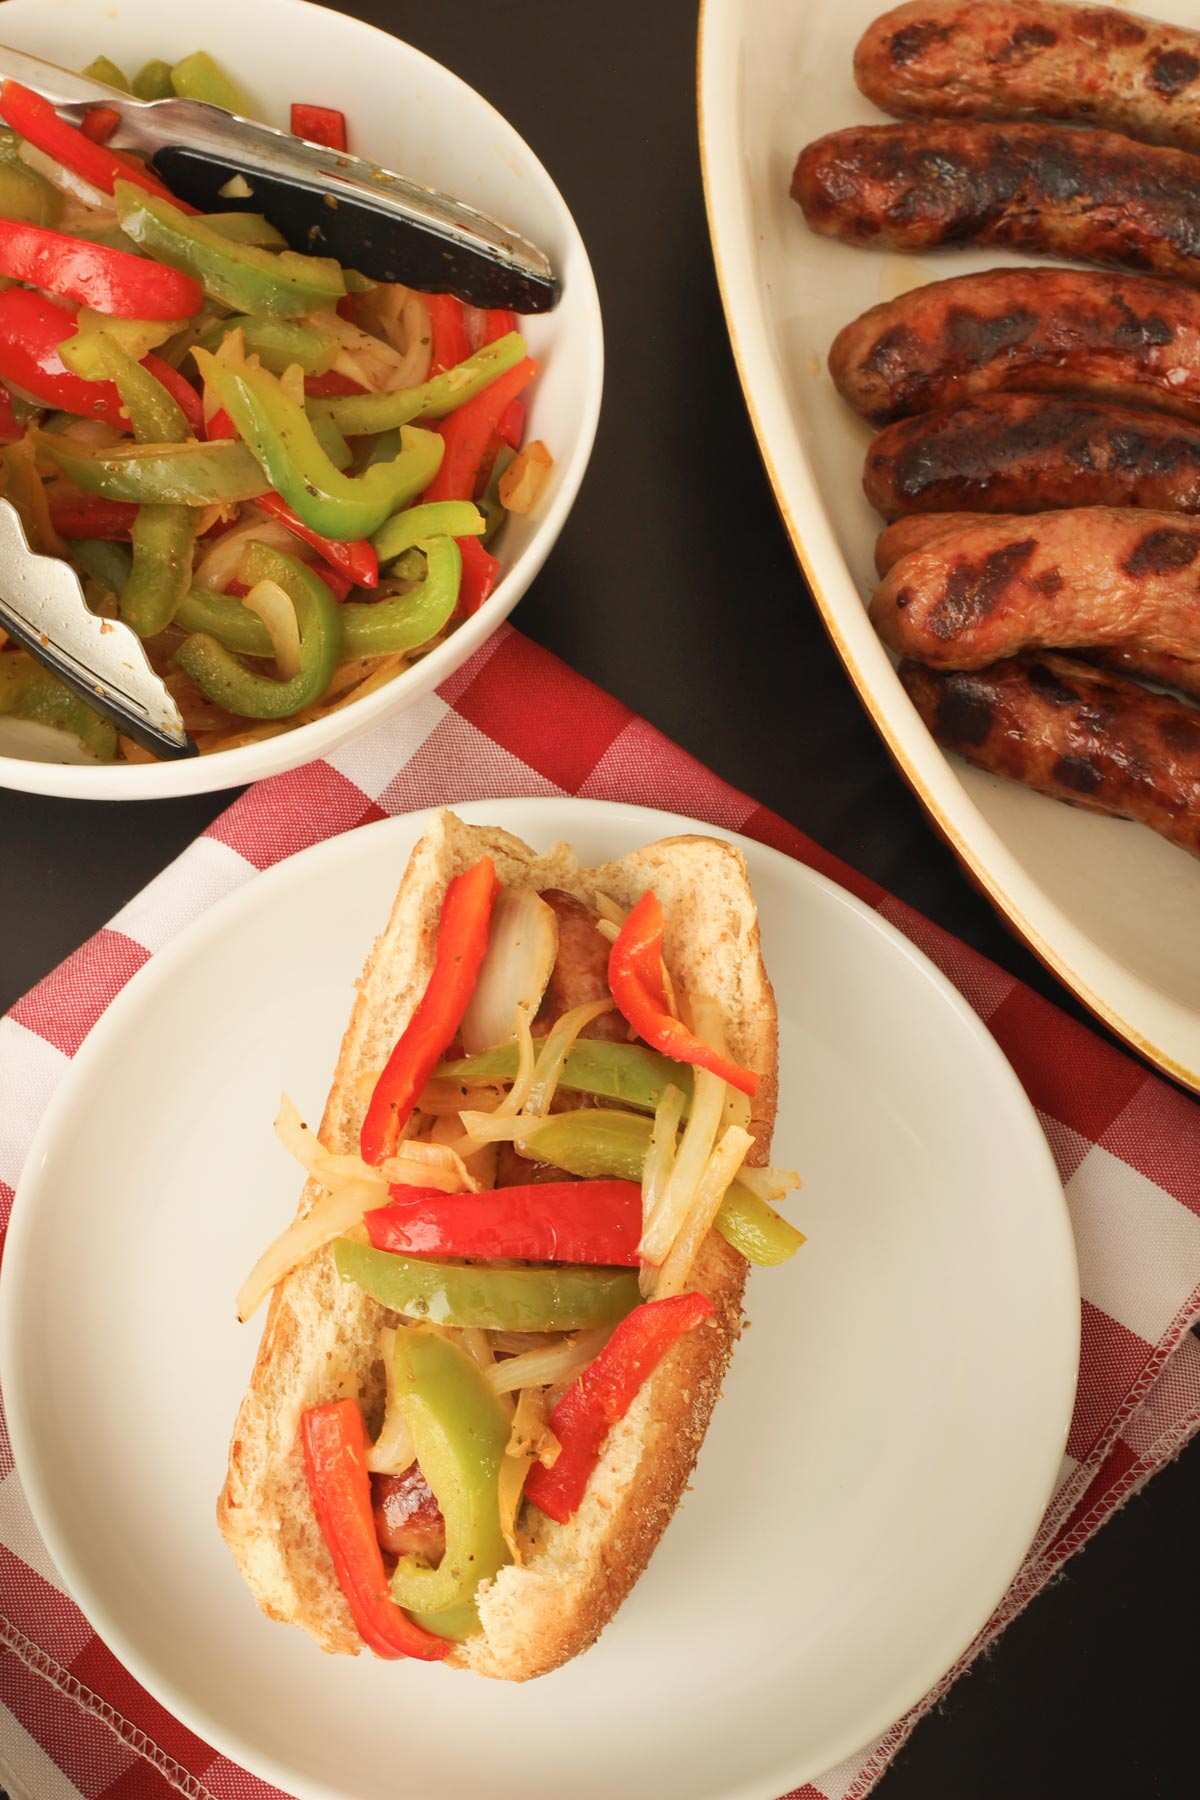 white plate with grilled brat topped with peppers and onions on buffet table with buns and brats.